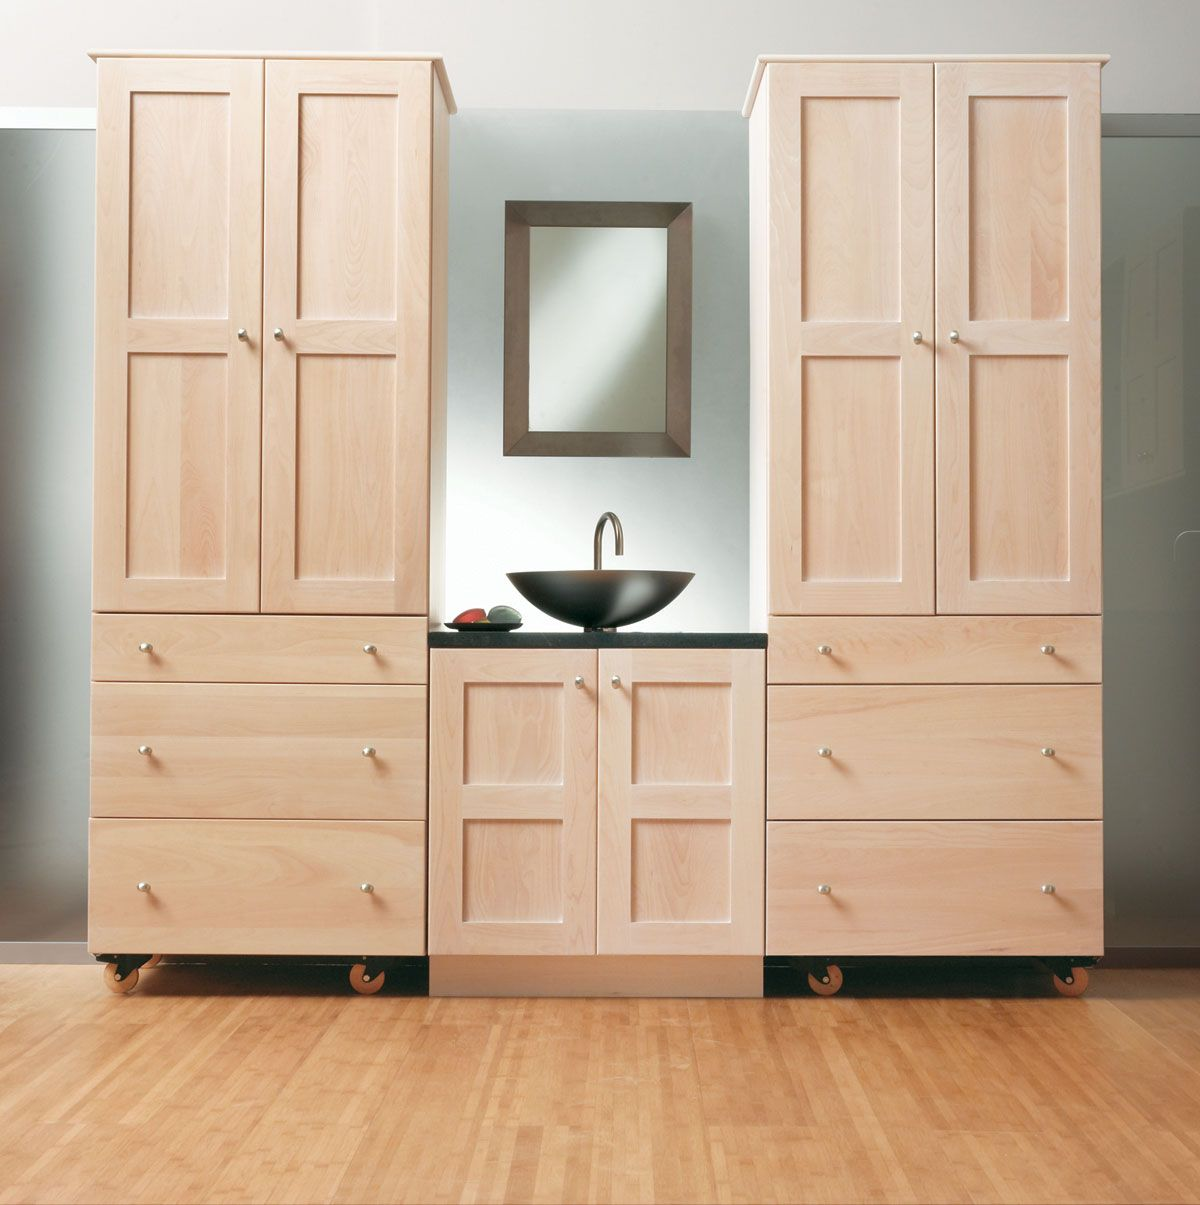 Mirrored Medicine Cabinet Lowes Alluring Lowes Bathroom Cabinets Craftsman Style Bathroom Cabinets Storage Decorating Design